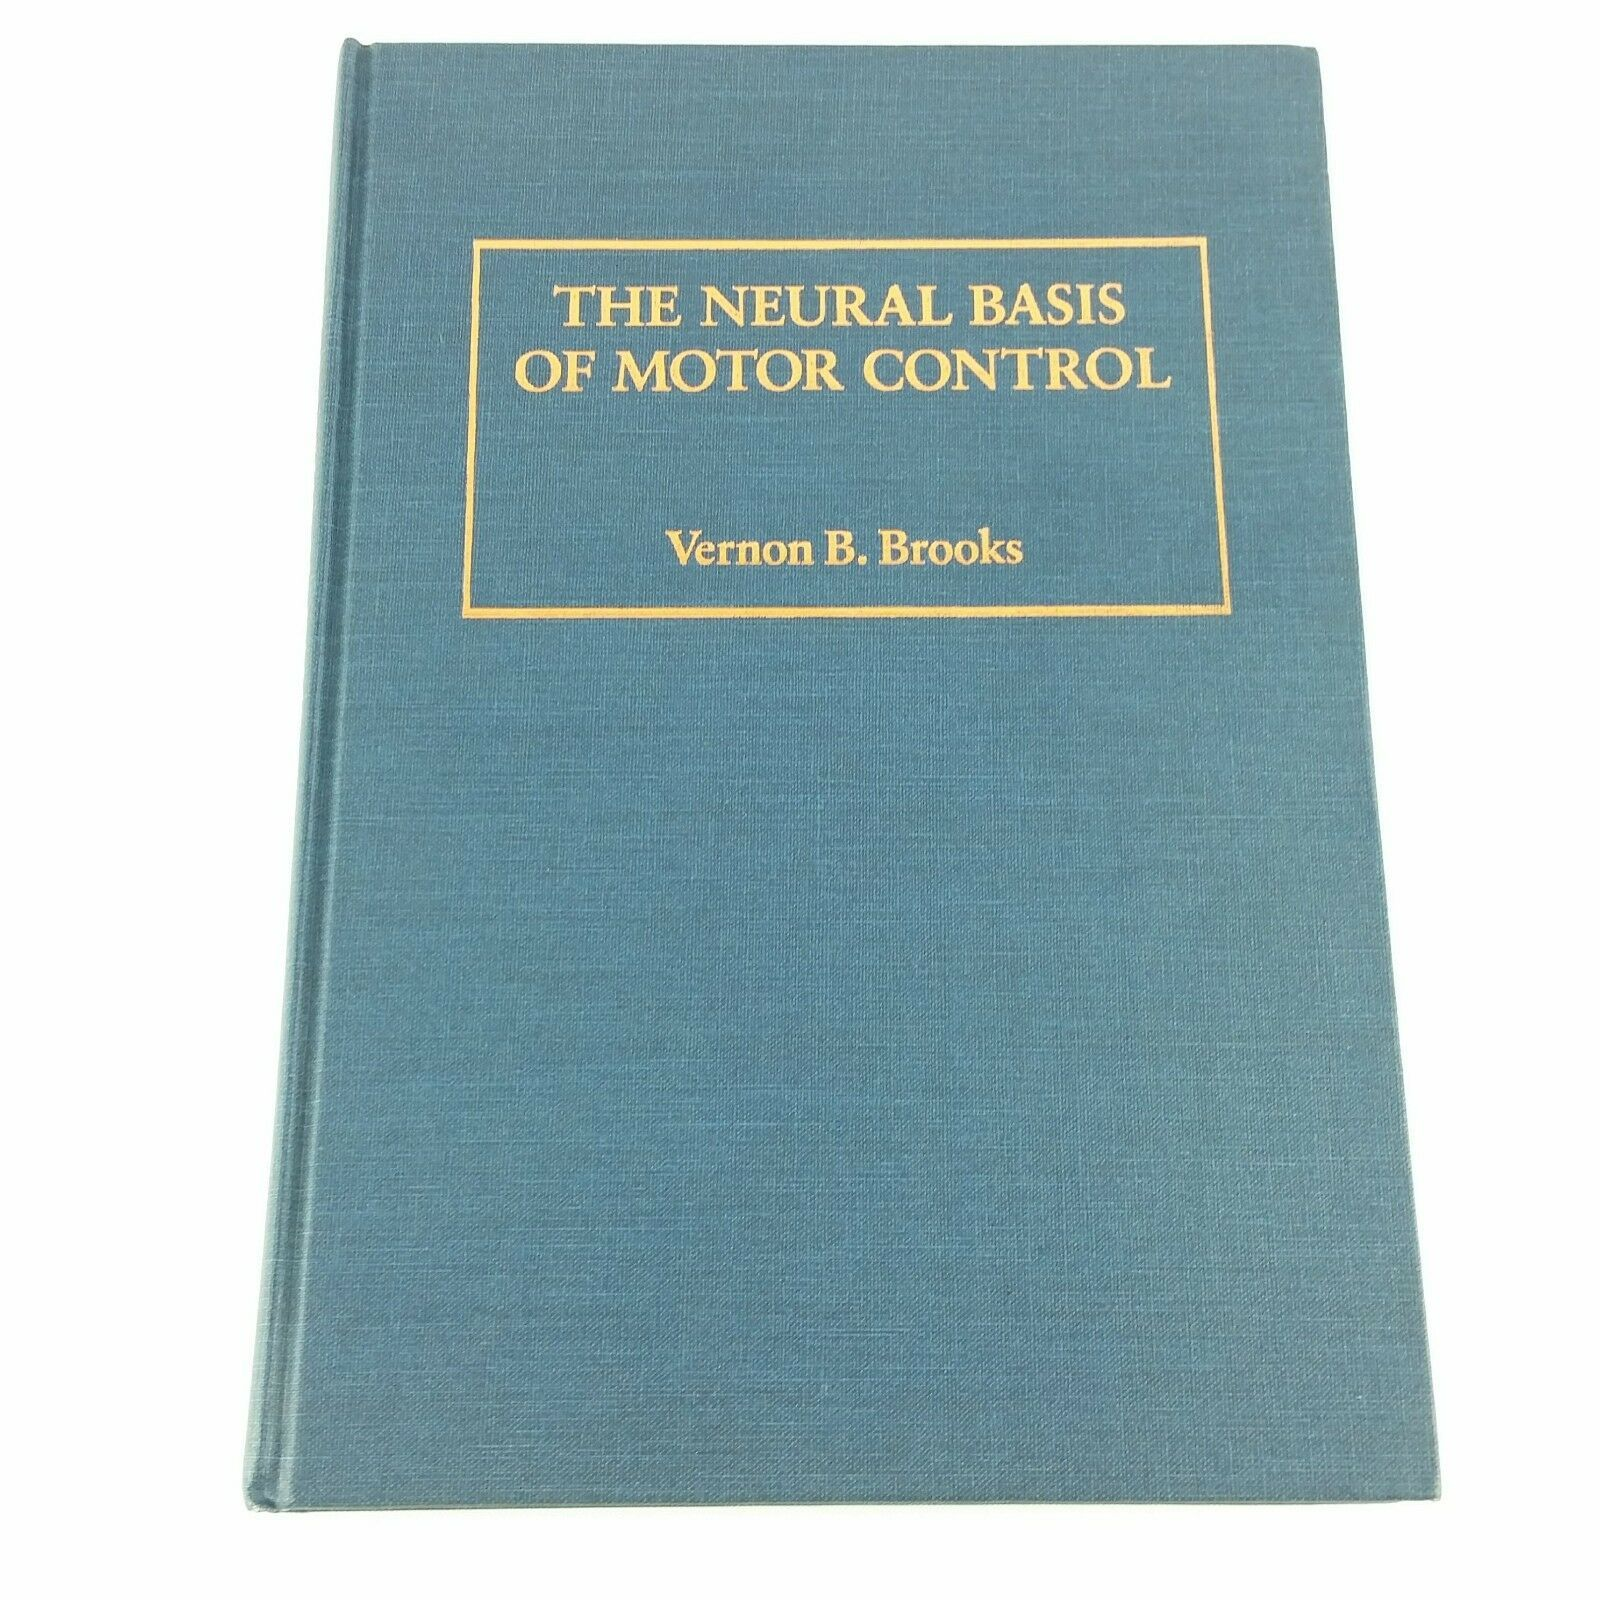 The Neural Basis of Motor Control 1986 Vintage Book Vernon Brooks Hardcover